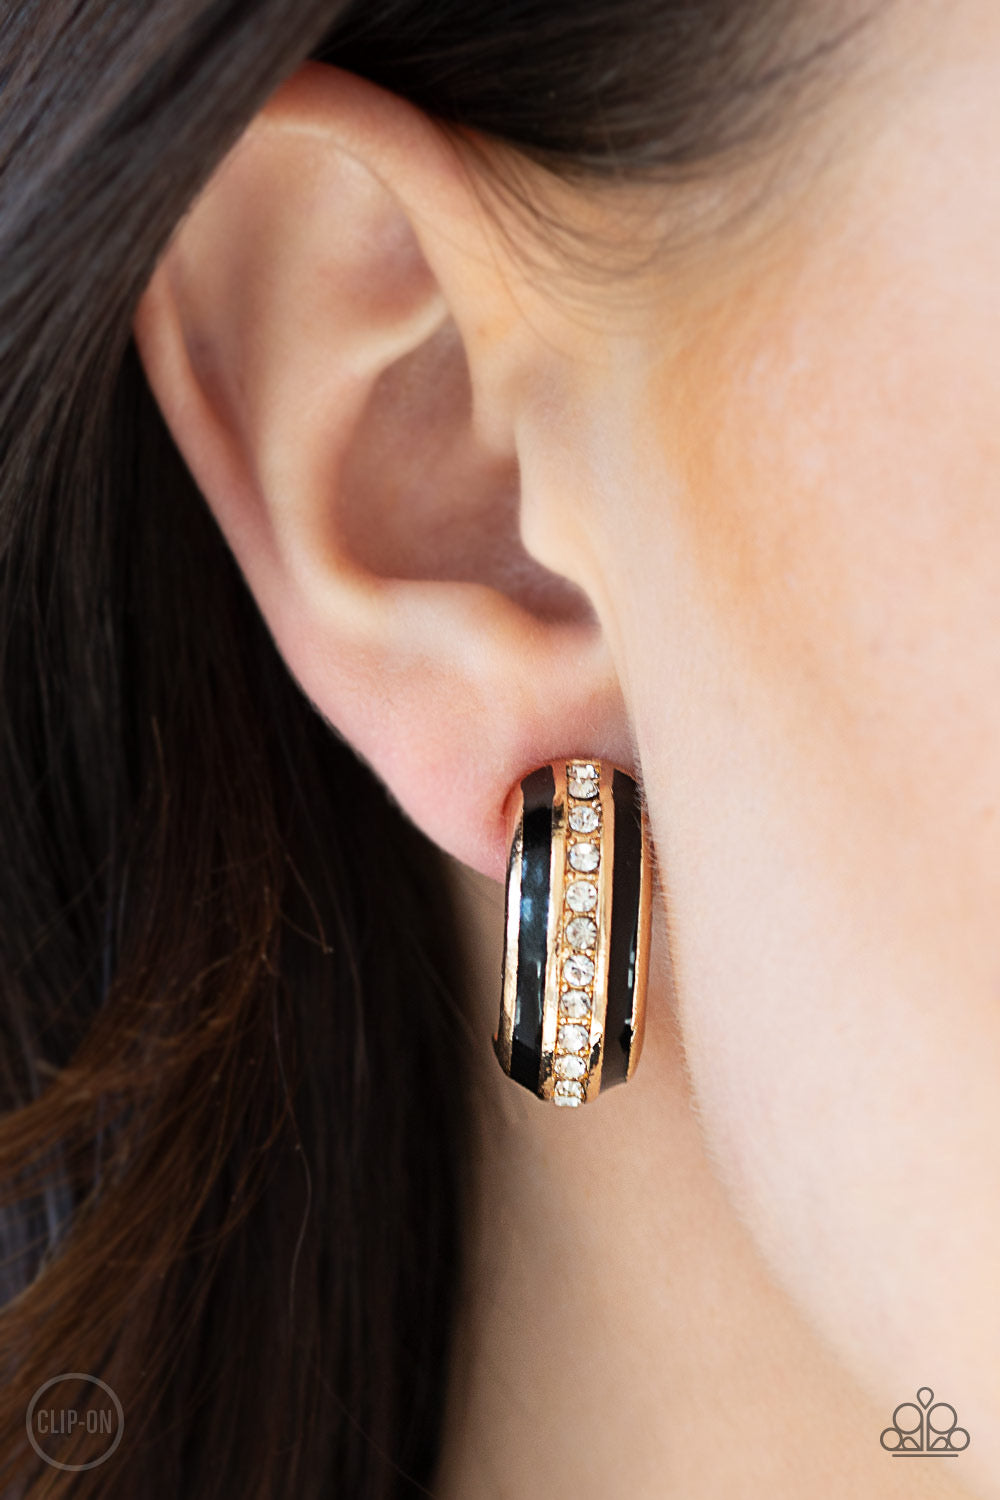 Paparazzi WEALTHY Living - Gold Clip-on Earrings